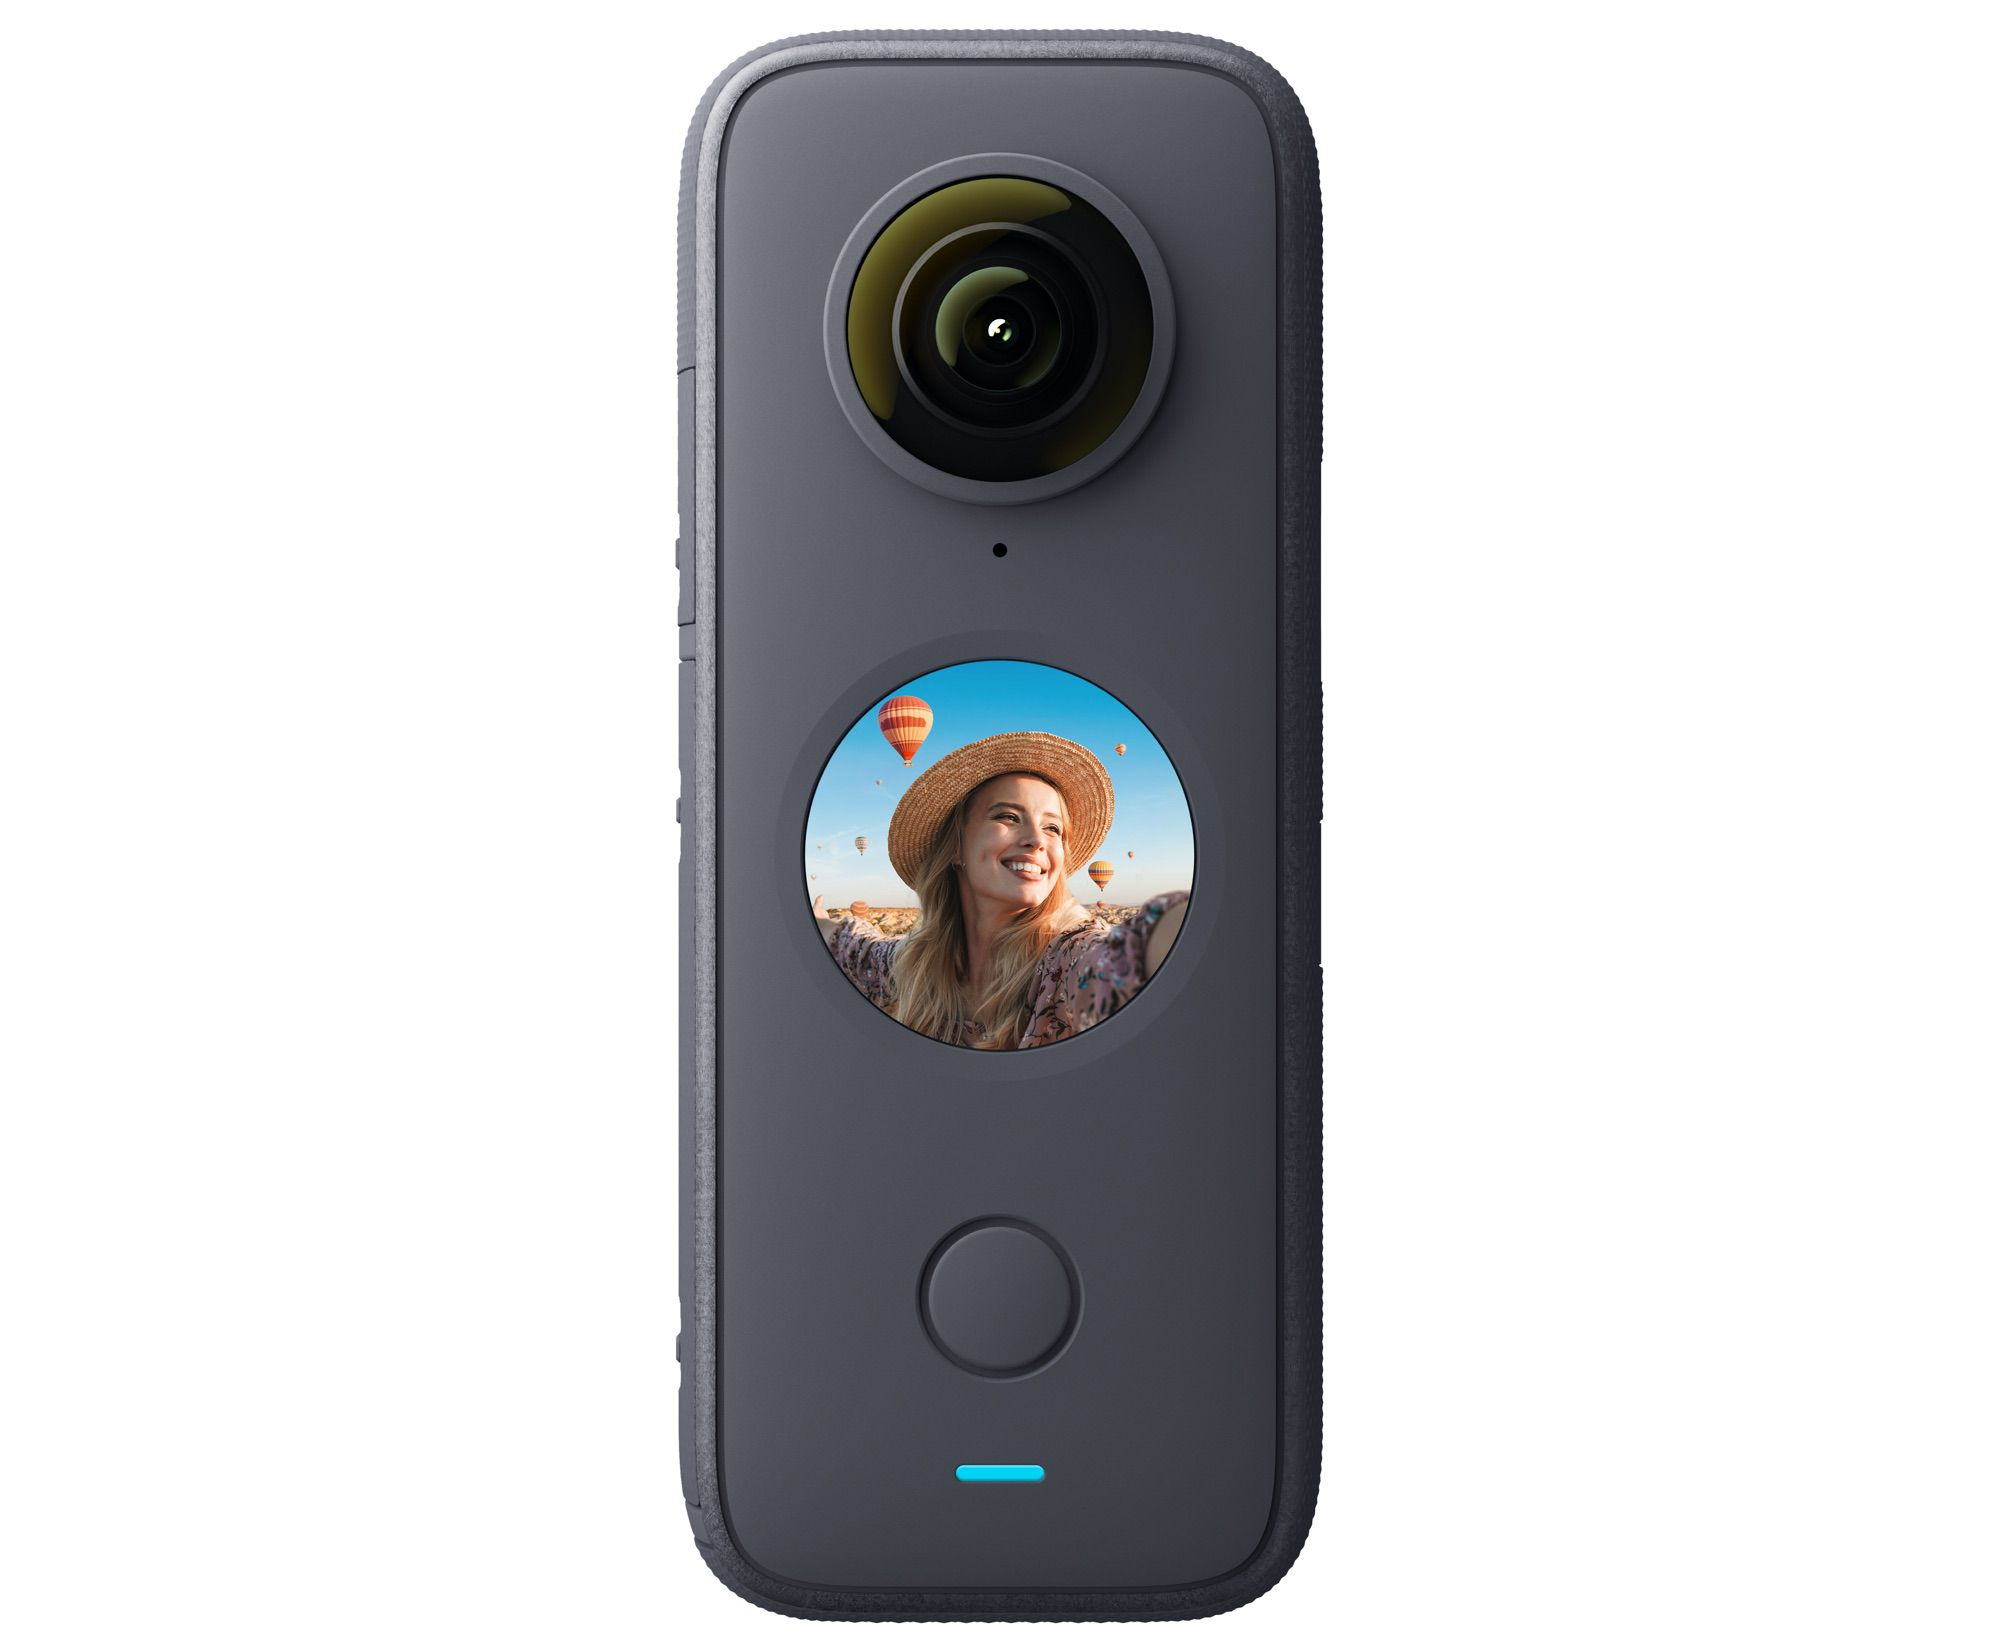 photo of Insta360 Launches New ONE X2 360-Degree Camera image